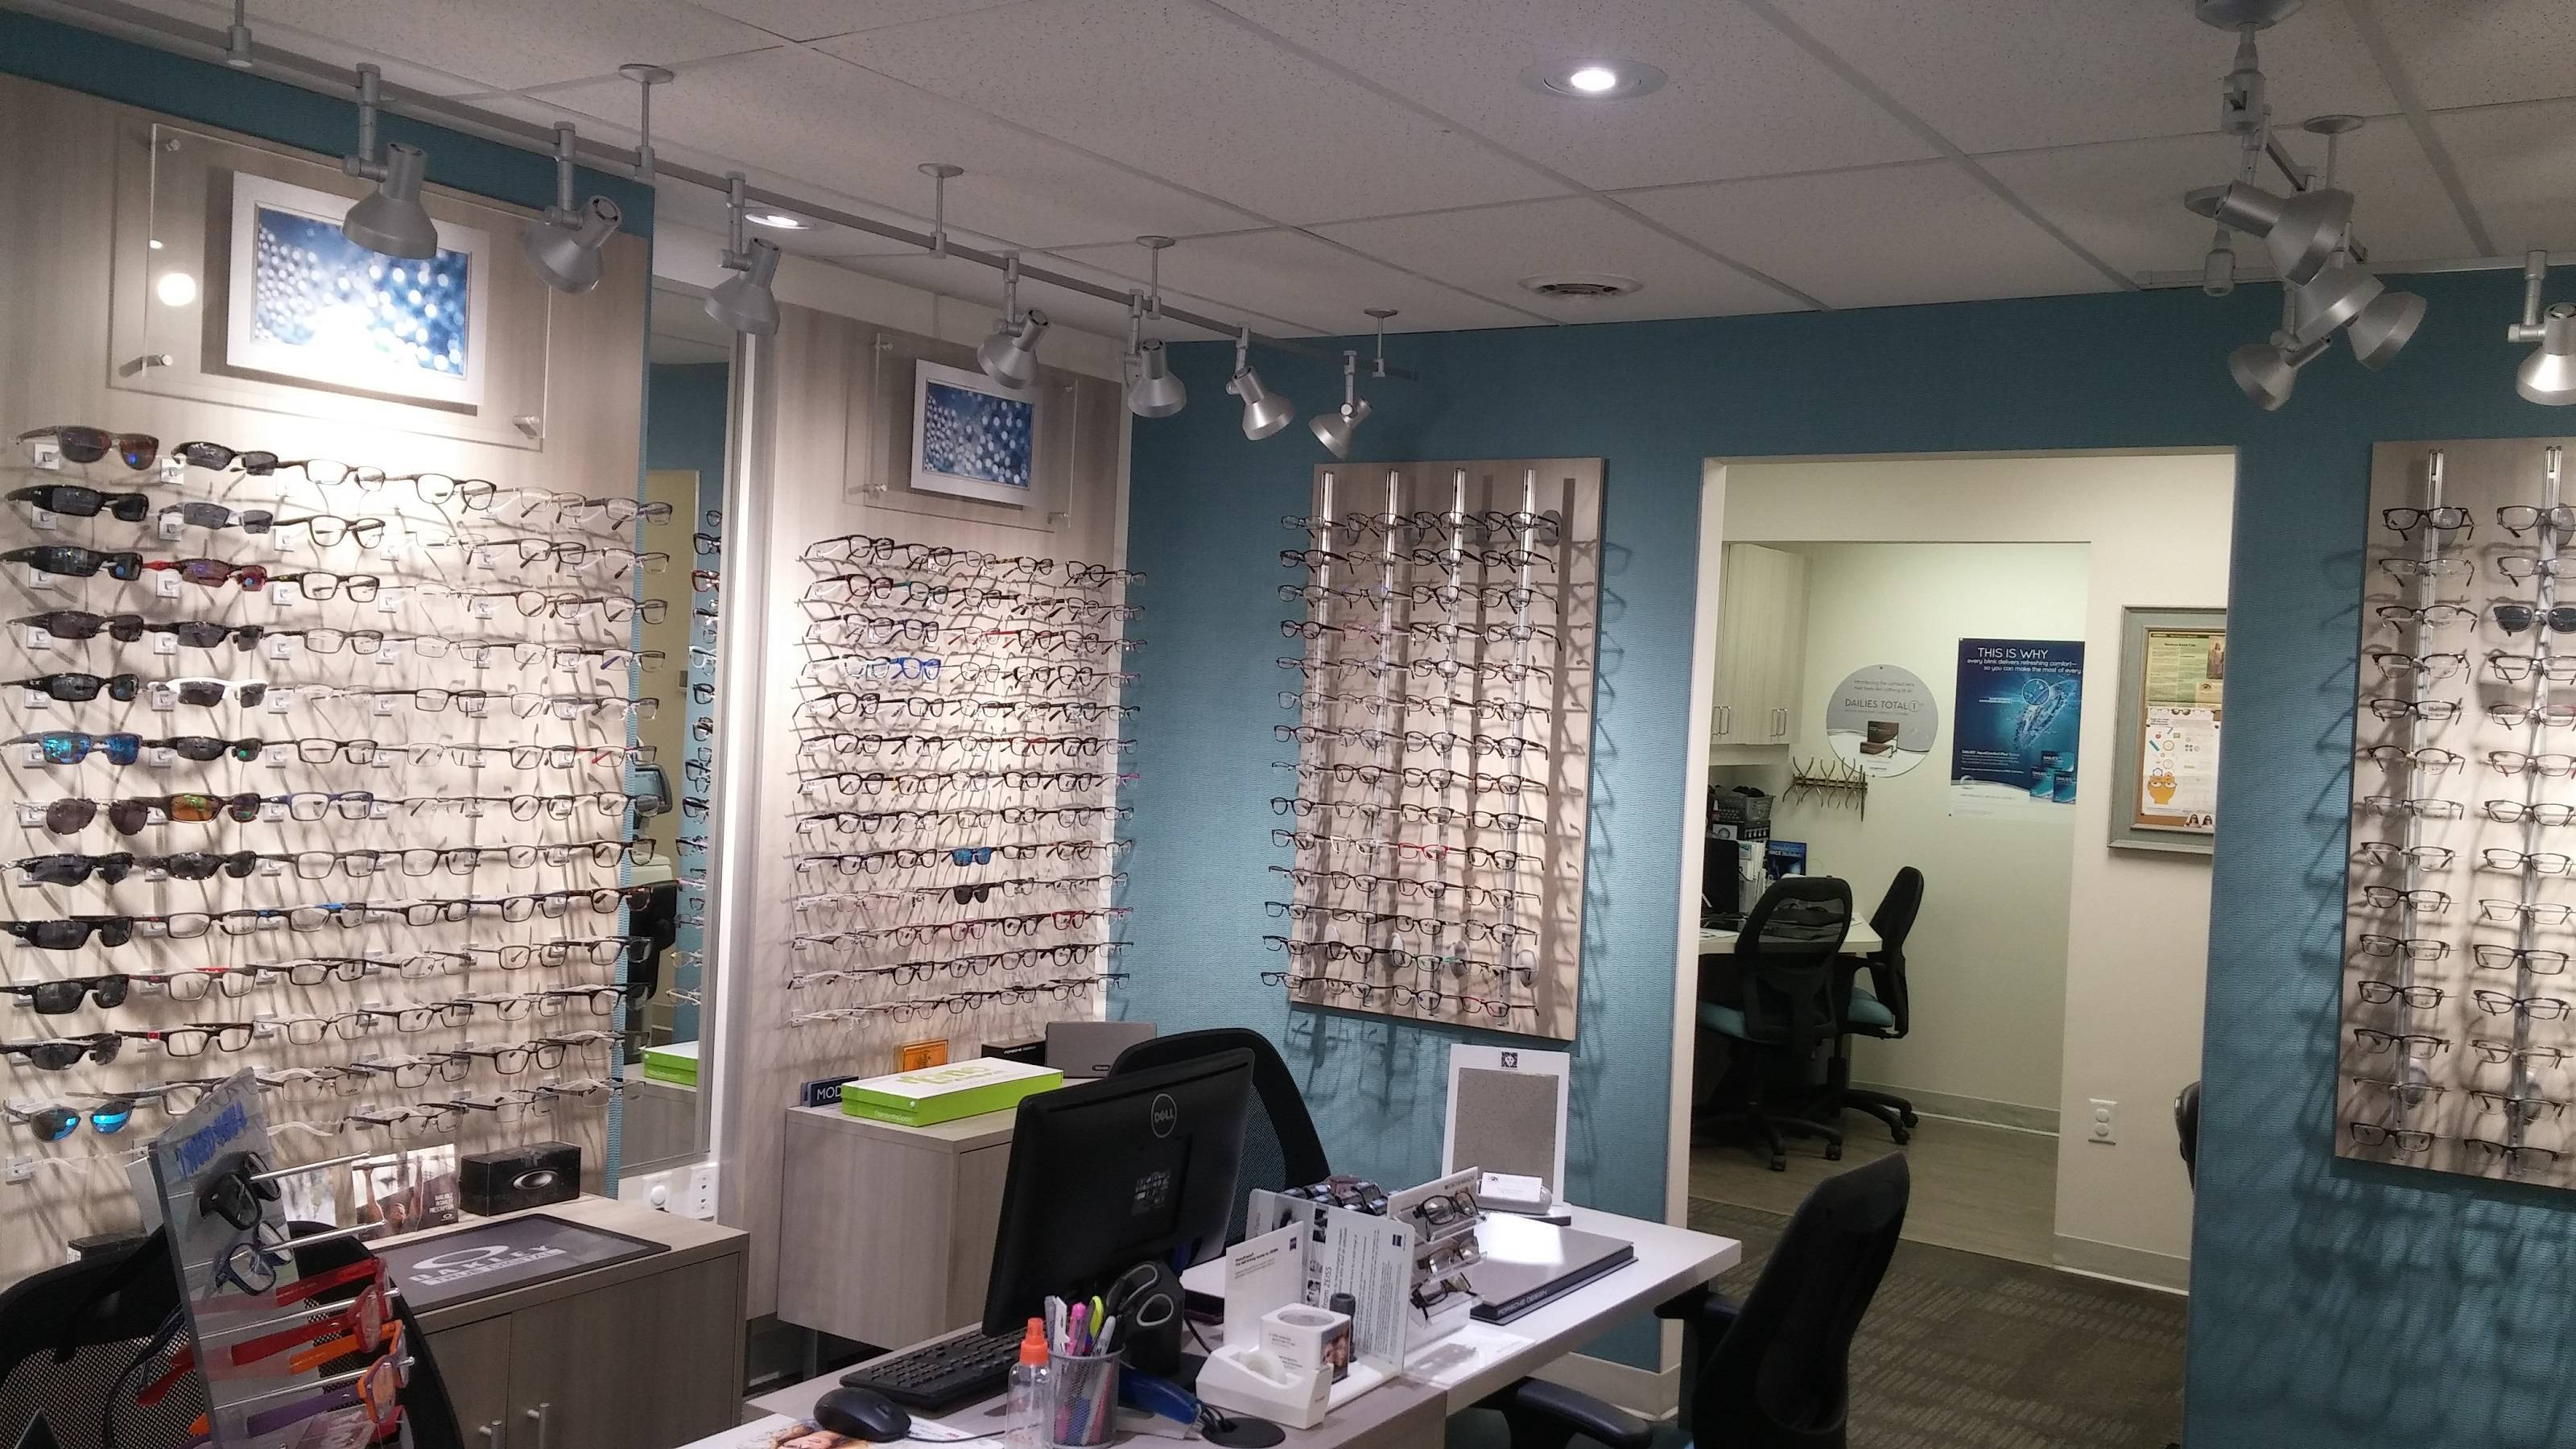 brooklin_vision_care_optical_wall_and_exam_room